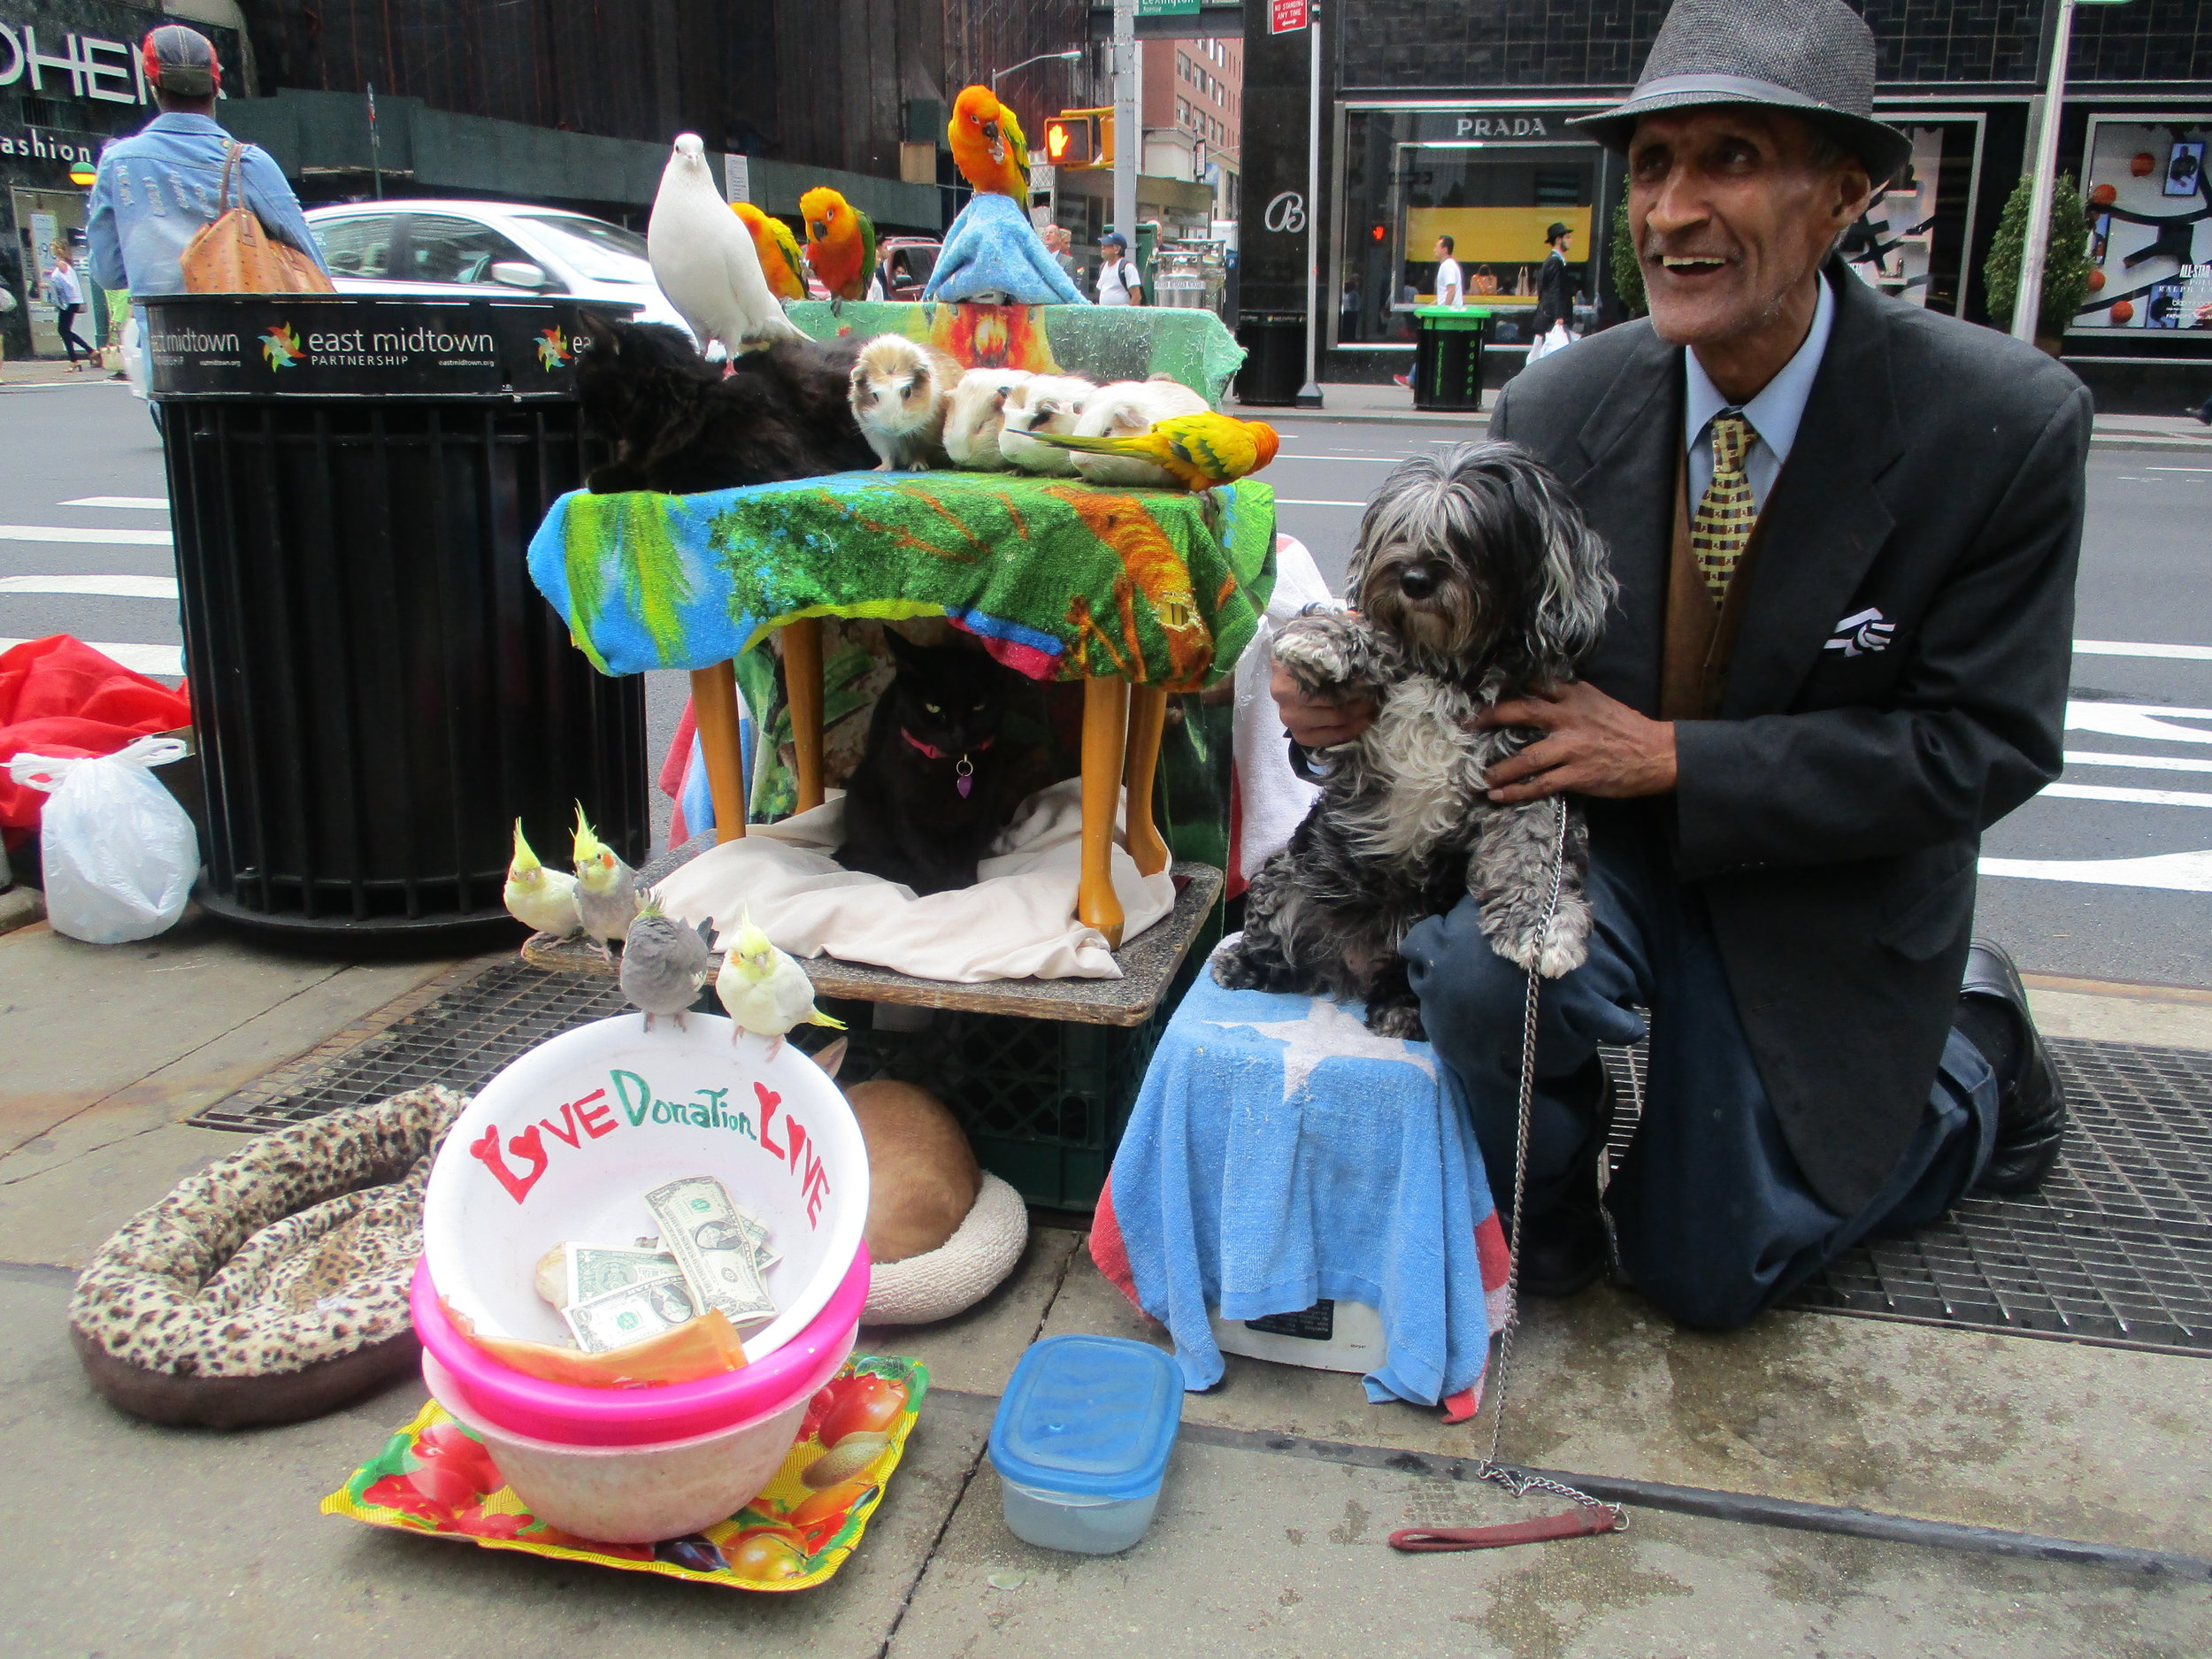 Unknown street performer with his parrot show at 59th Street and Lexington Avenue, 2017